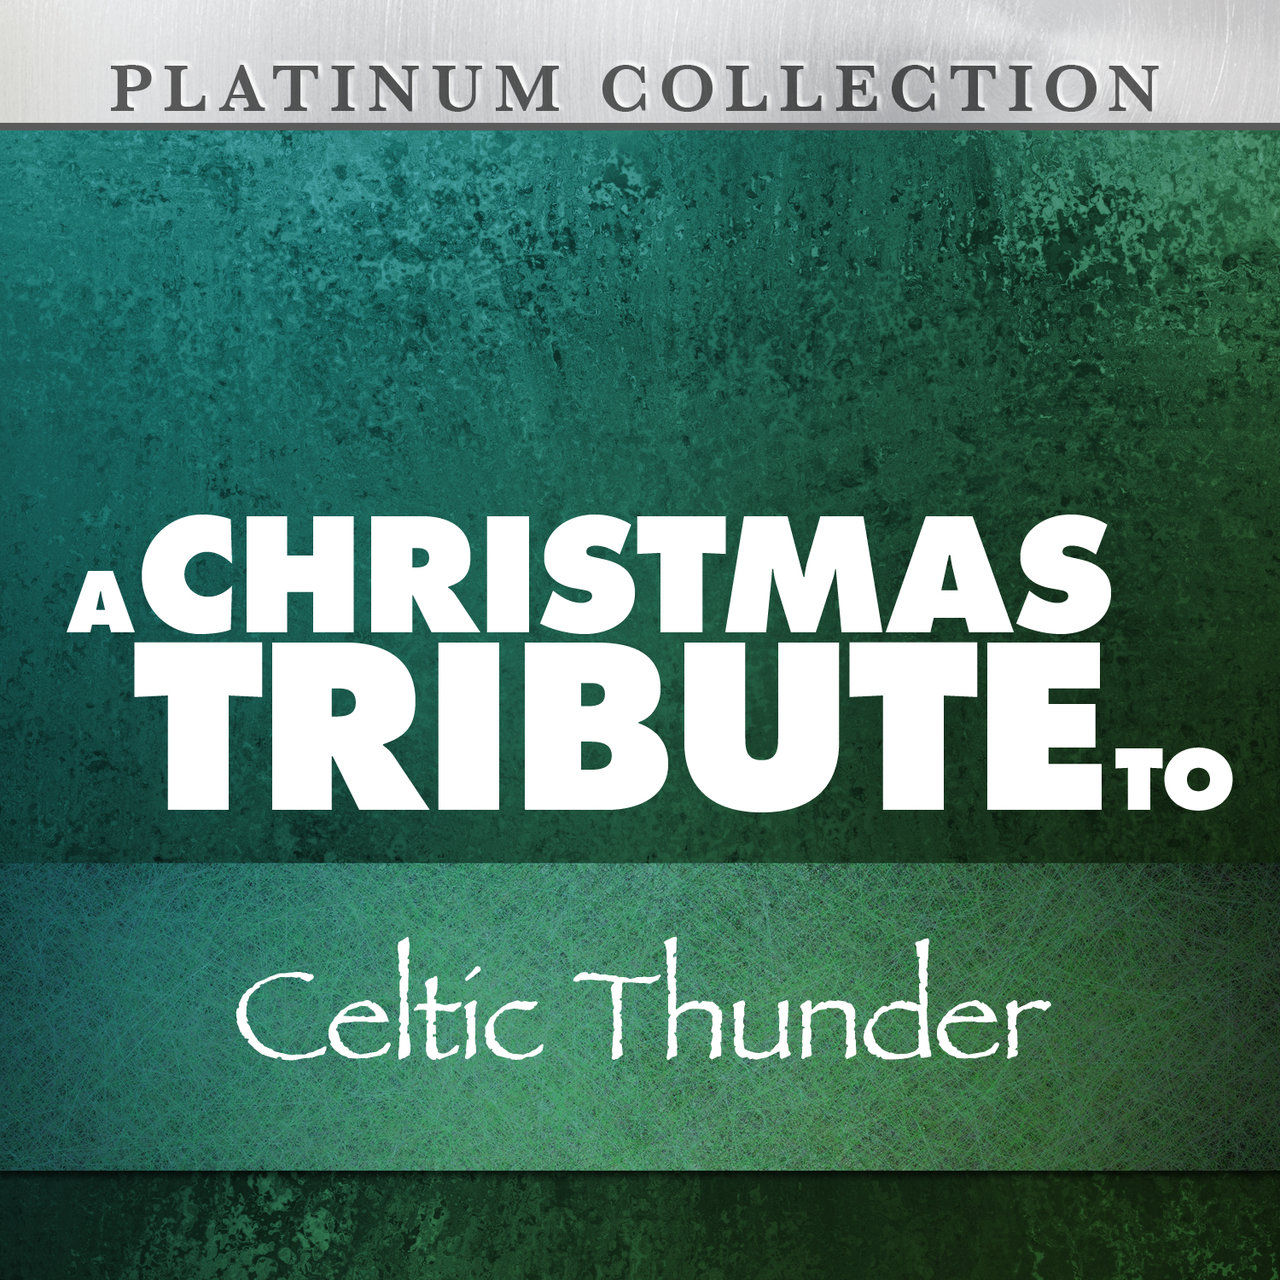 Celtic Thunder Christmas.A Christmas Tribute To Celtic Thunder By Platinum Collection